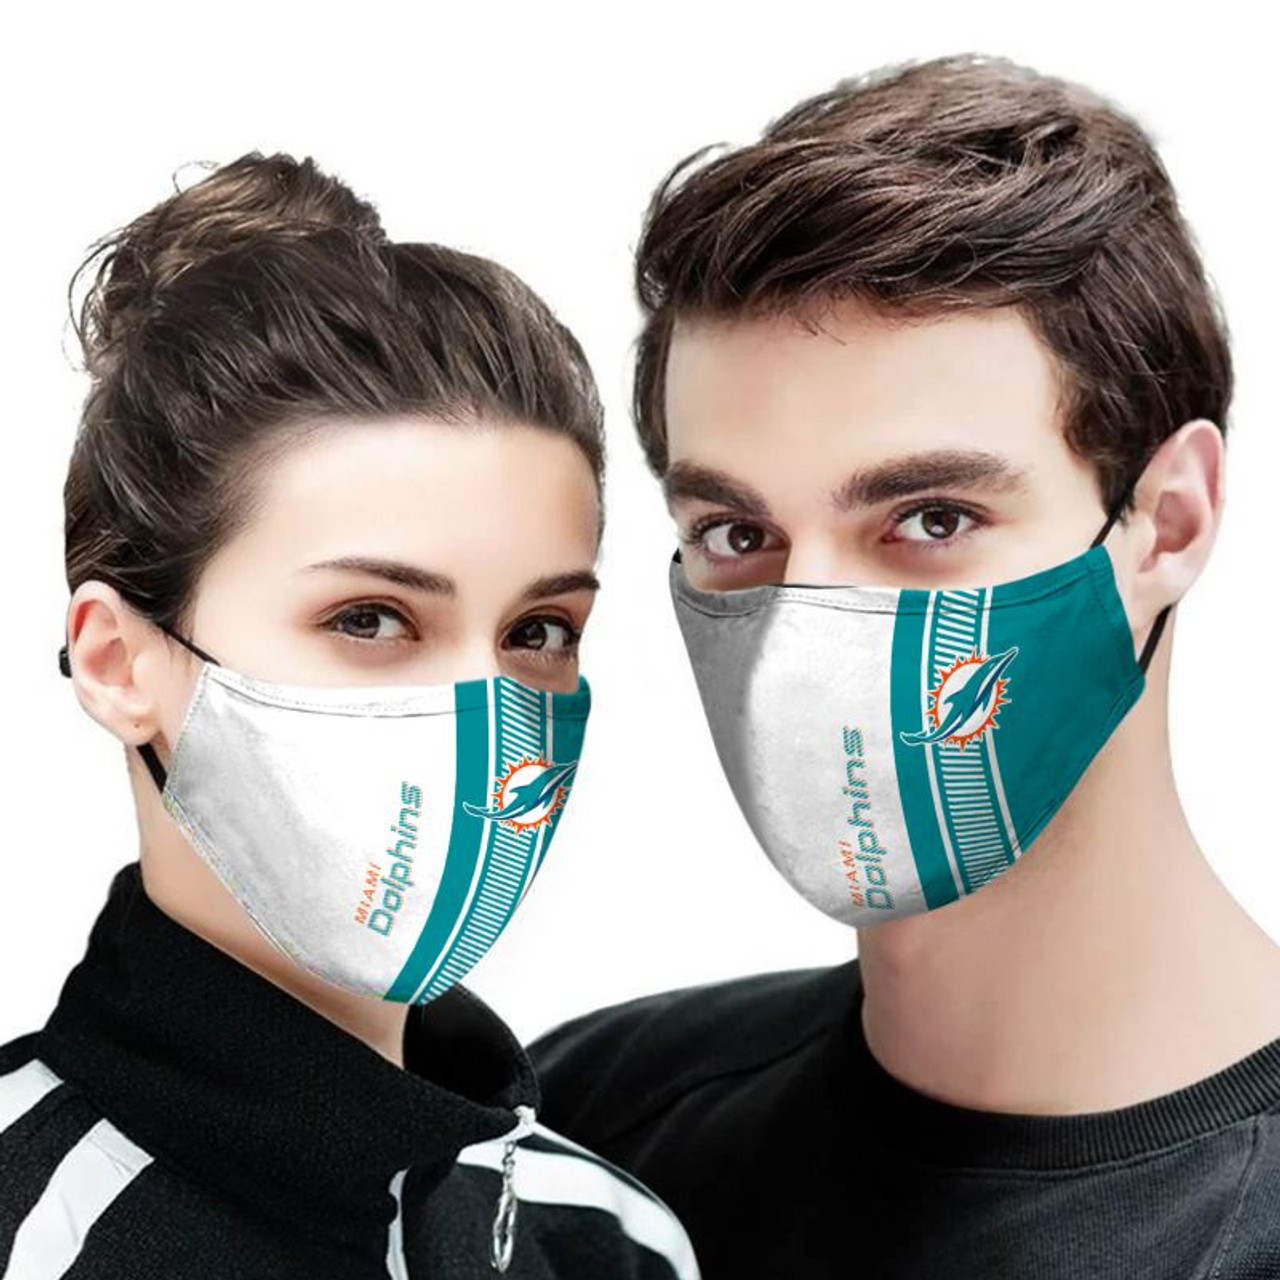 **(OFFICIAL-MIAMI-DOLPHINS-TEAM CUSTOM-3D-PRINTED DESIGNS/BREATHABLE PM2.5 FILTER BACTERIA/VIRUS PROOF & ANTI DUST PROOF WITH-ADJUSTABLE TIE-BACKS/REUSABLE-MACHINE-WASHABLE CUSTOM FACE MASKS/ALL-ADJUSTABLE-NOSE-CLIPS & INSIDE-5-LAYERED-FILTERS)**